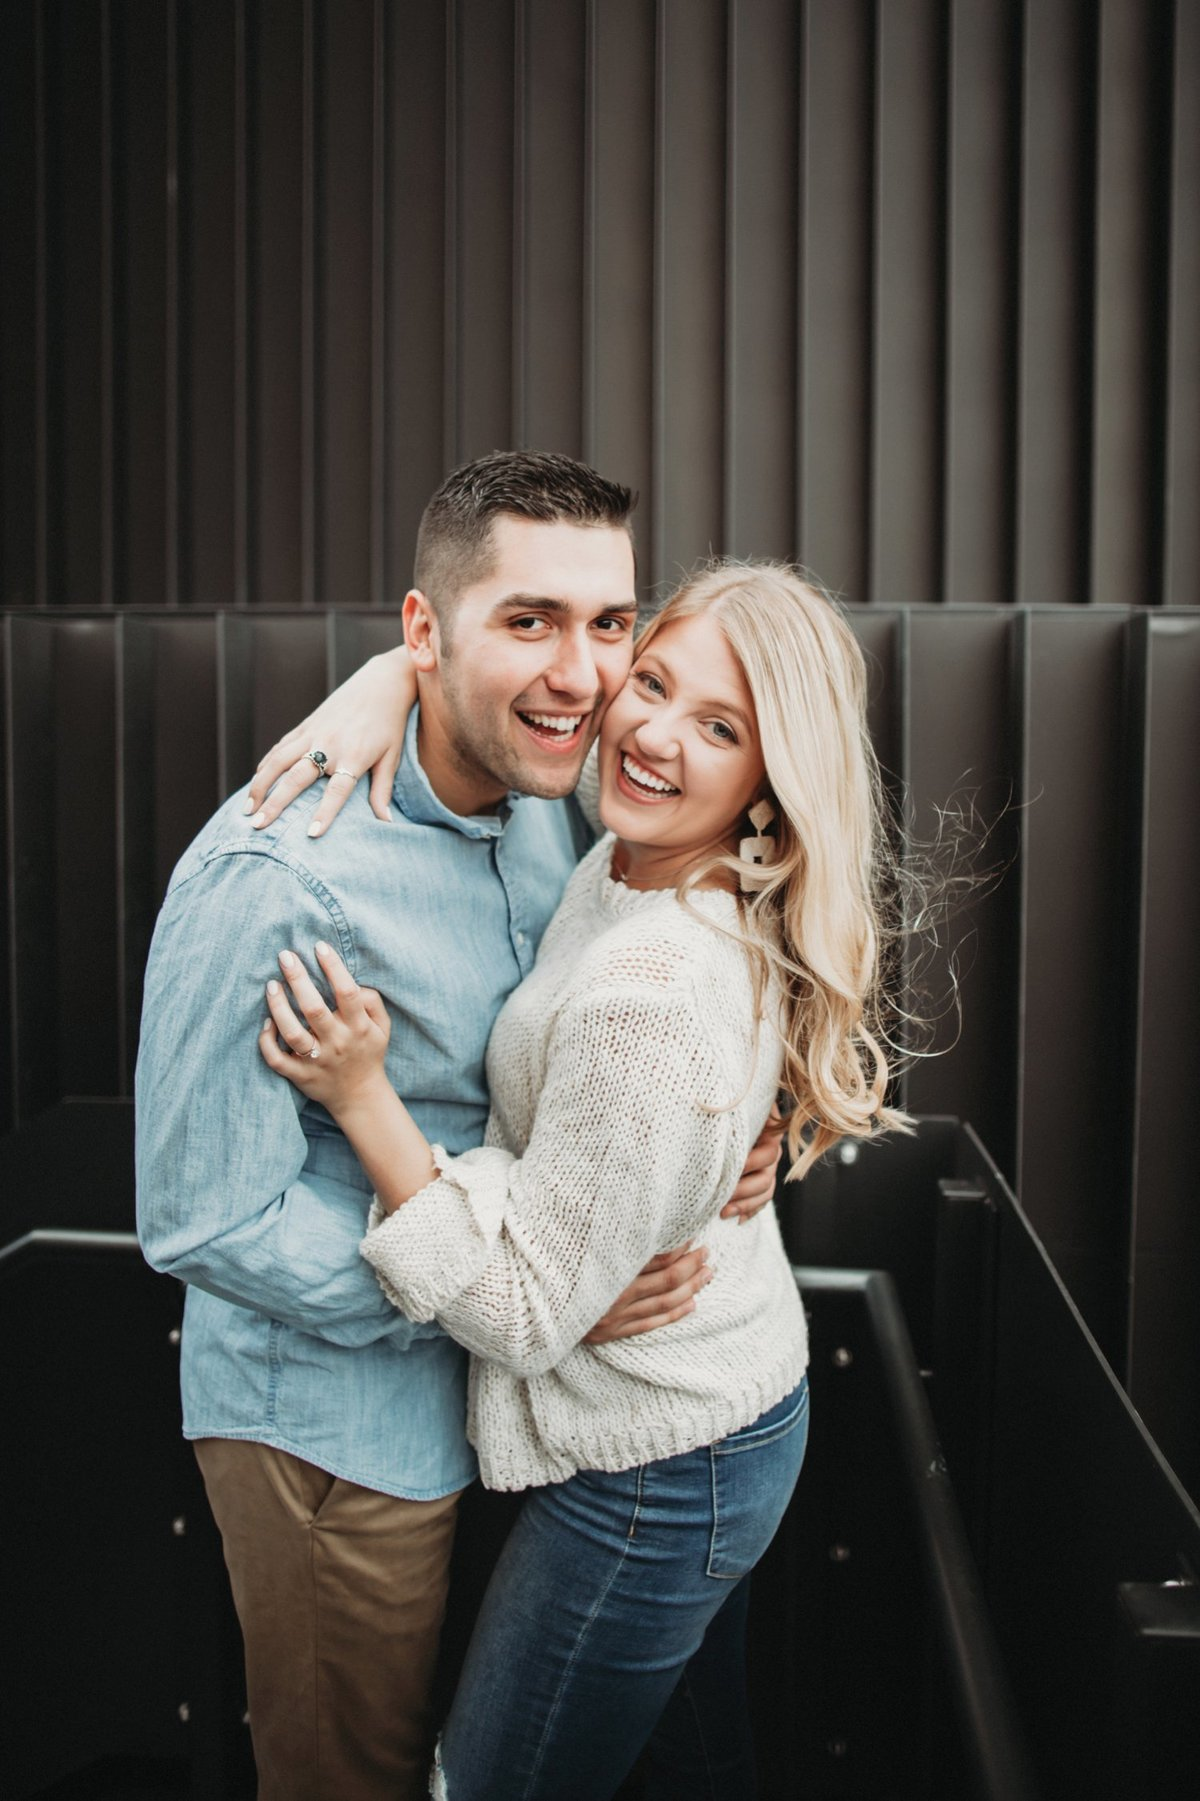 Kansas City Salt Lake City Destination Wedding Photographer_0226